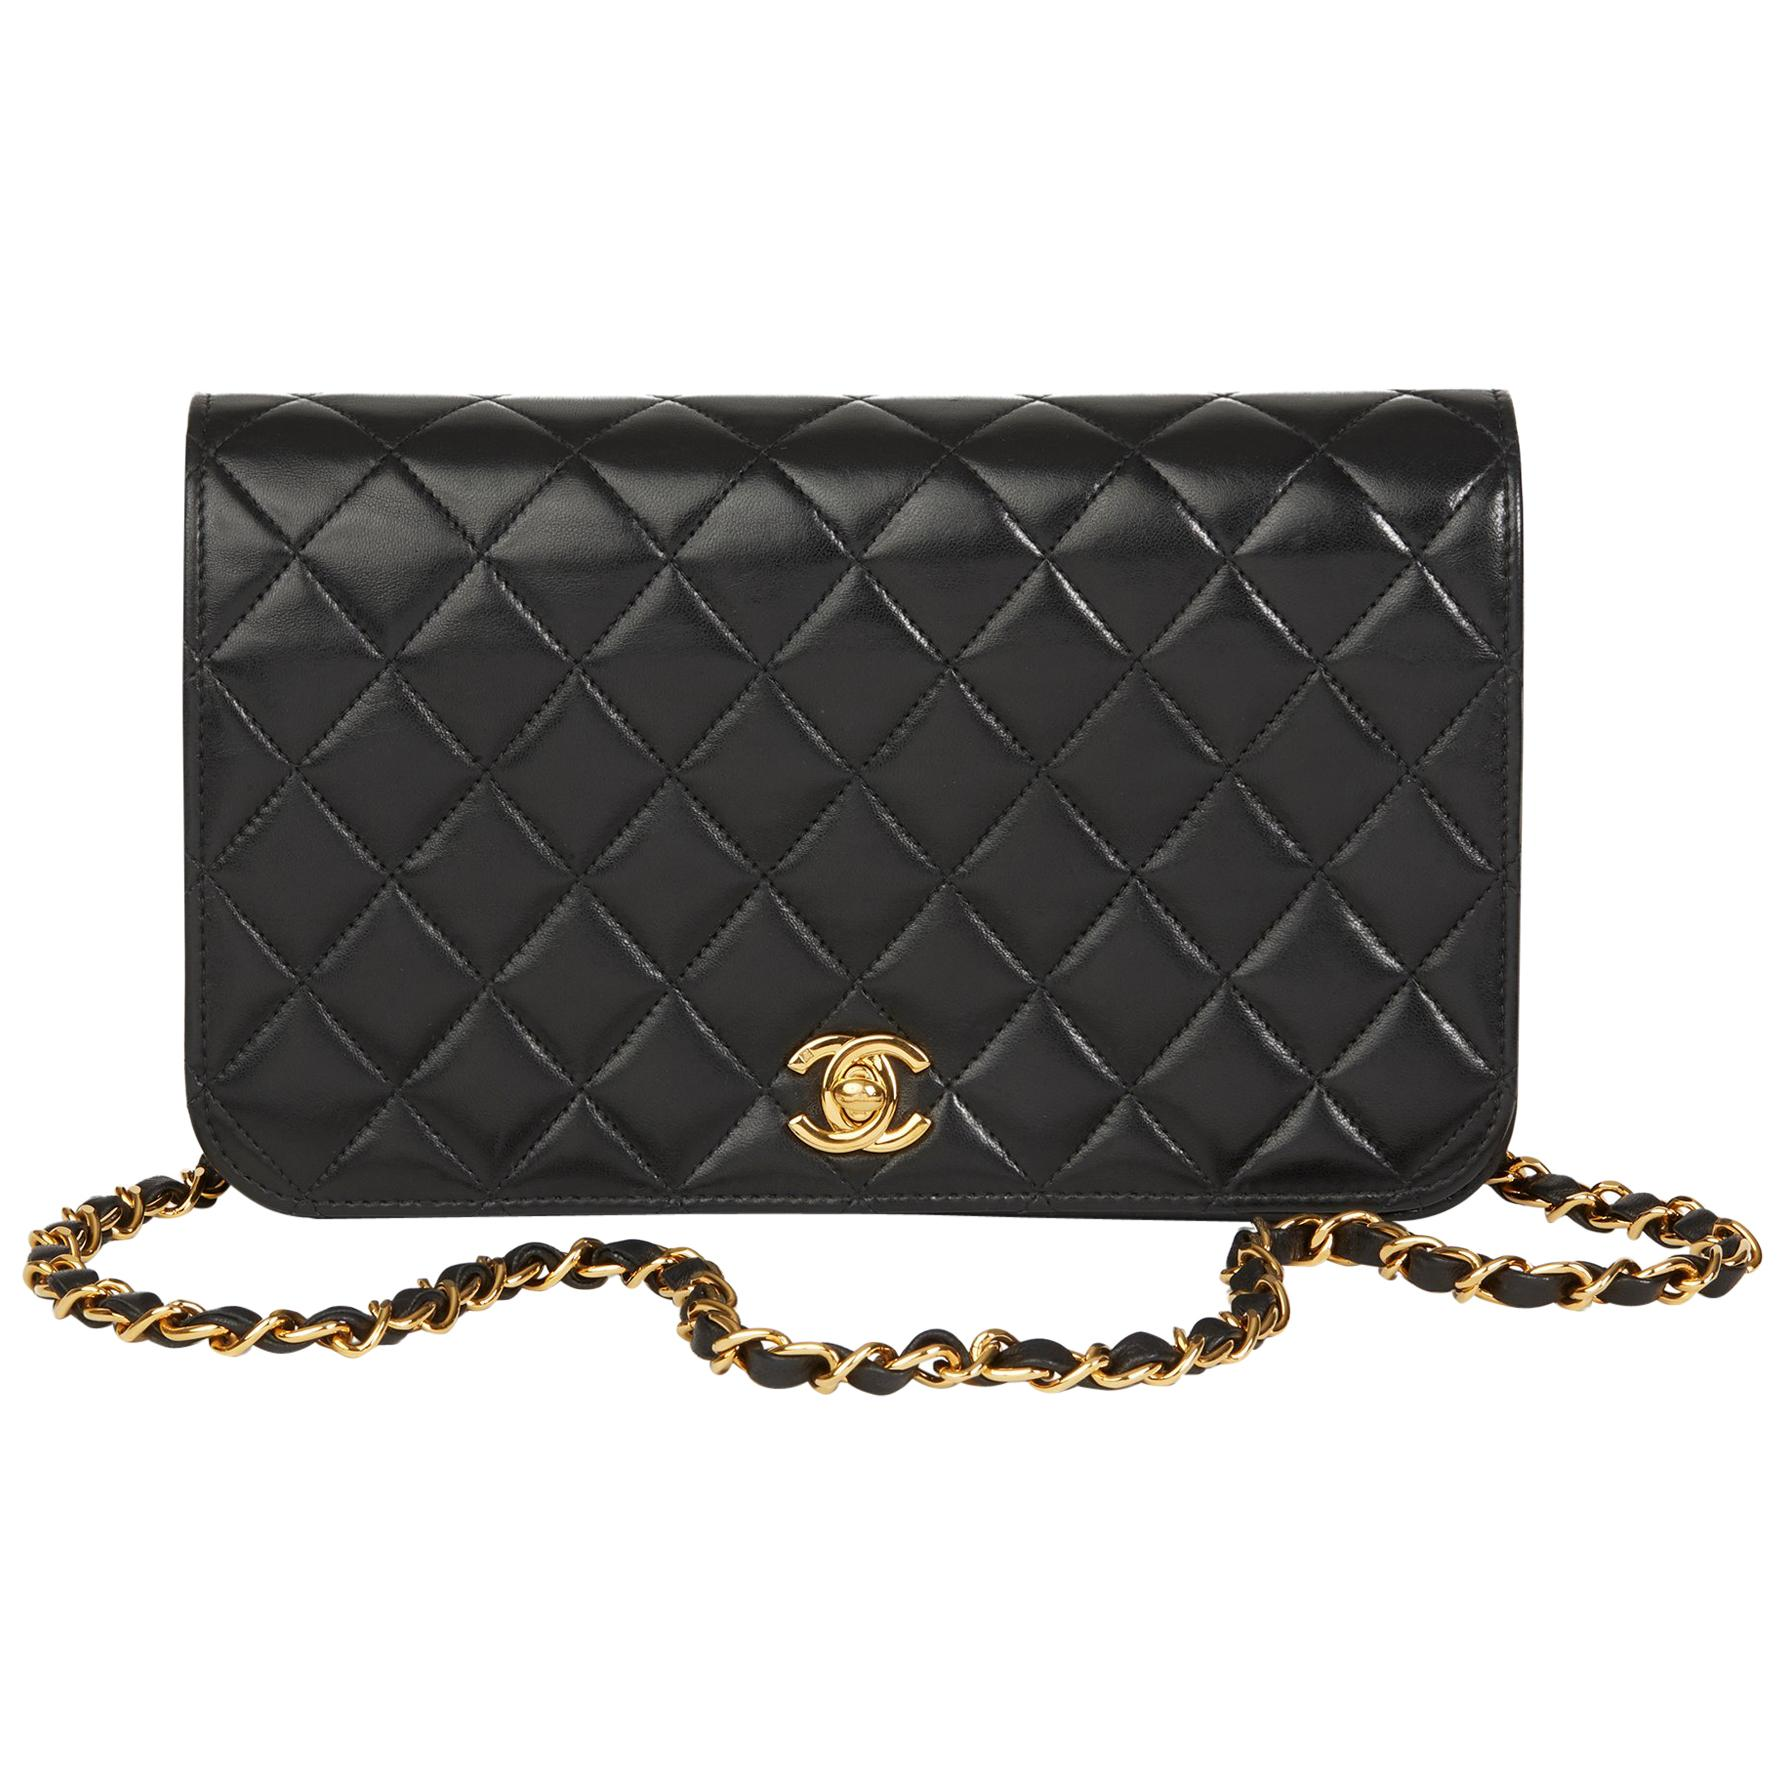 23a37ed3787b CHANEL Black Caviar Maxi Single Flap with Gold Hardware 2009 For Sale at  1stdibs